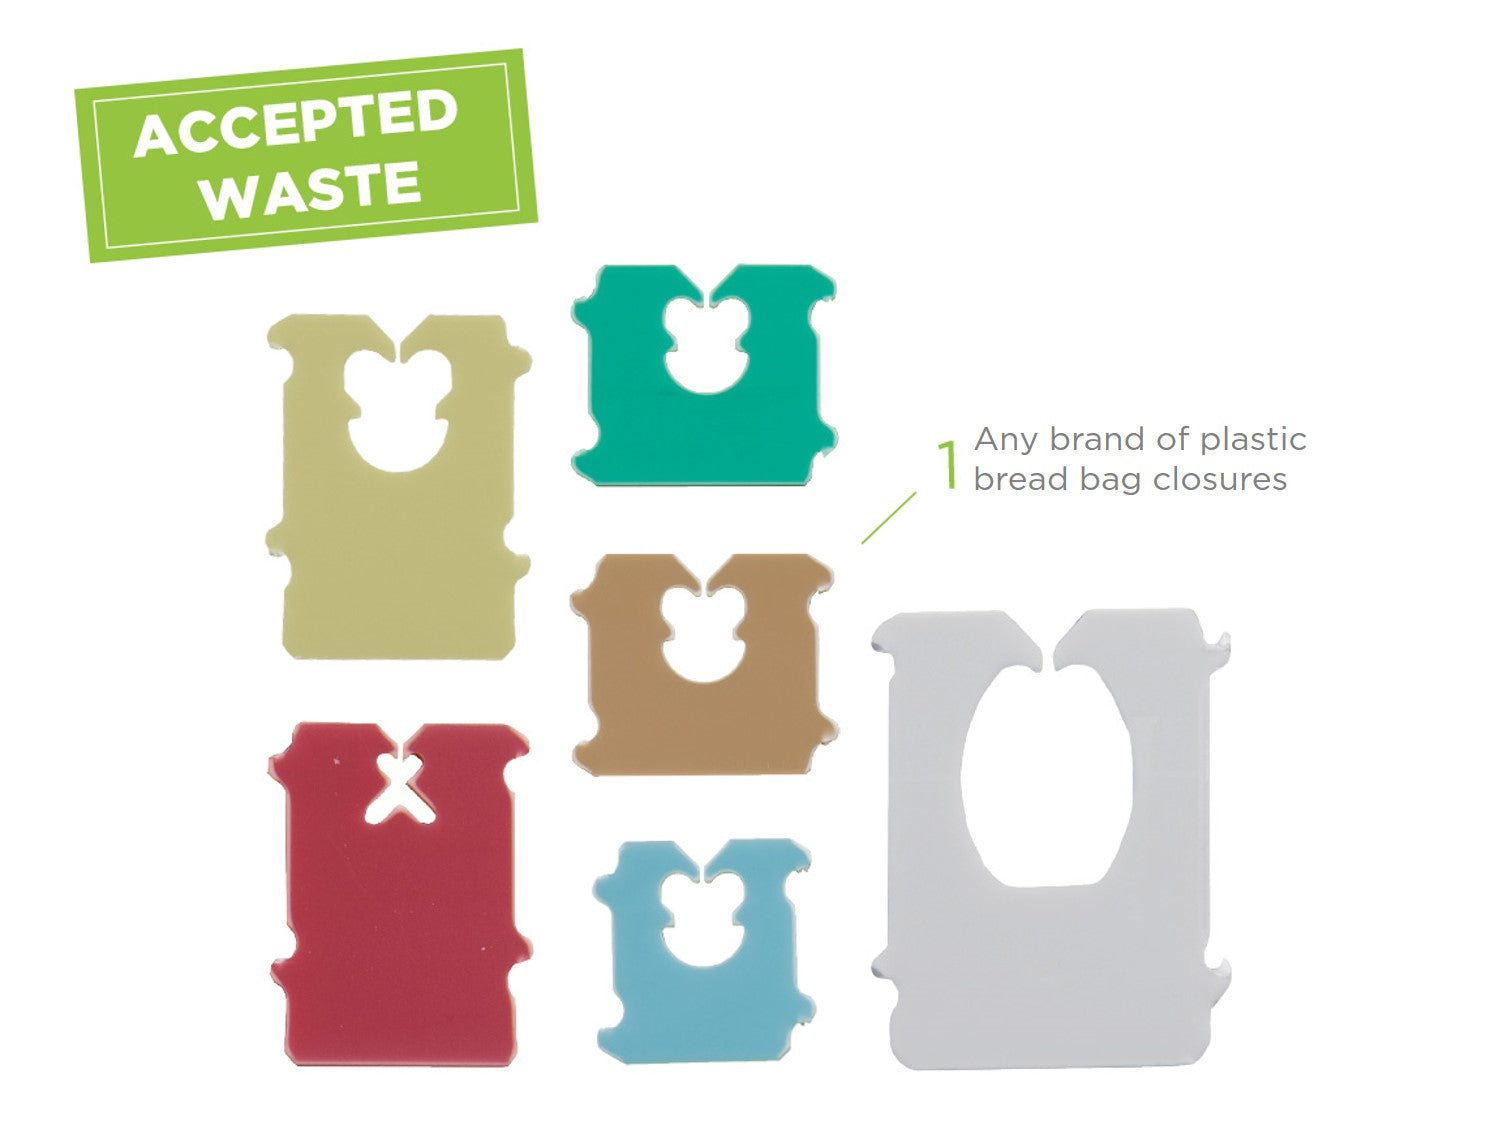 Terracycle-Australia-Bread-Bag-Closure-Tags-Recycling-Program